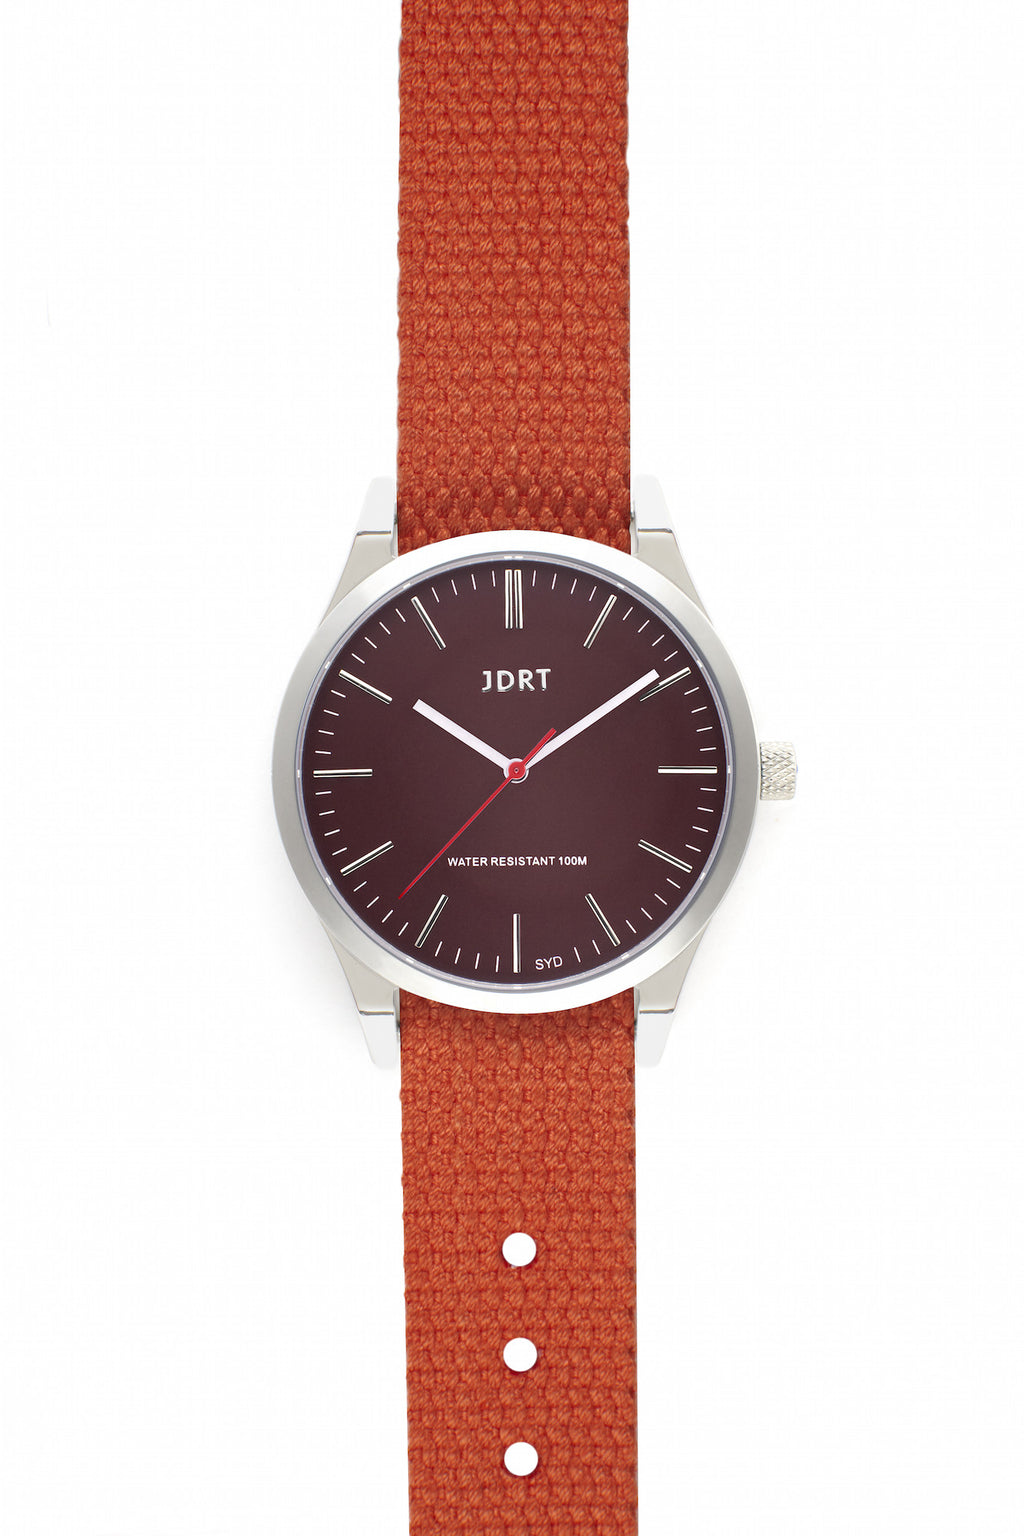 Oxblood Face with Mandarin Canvas Watch Band